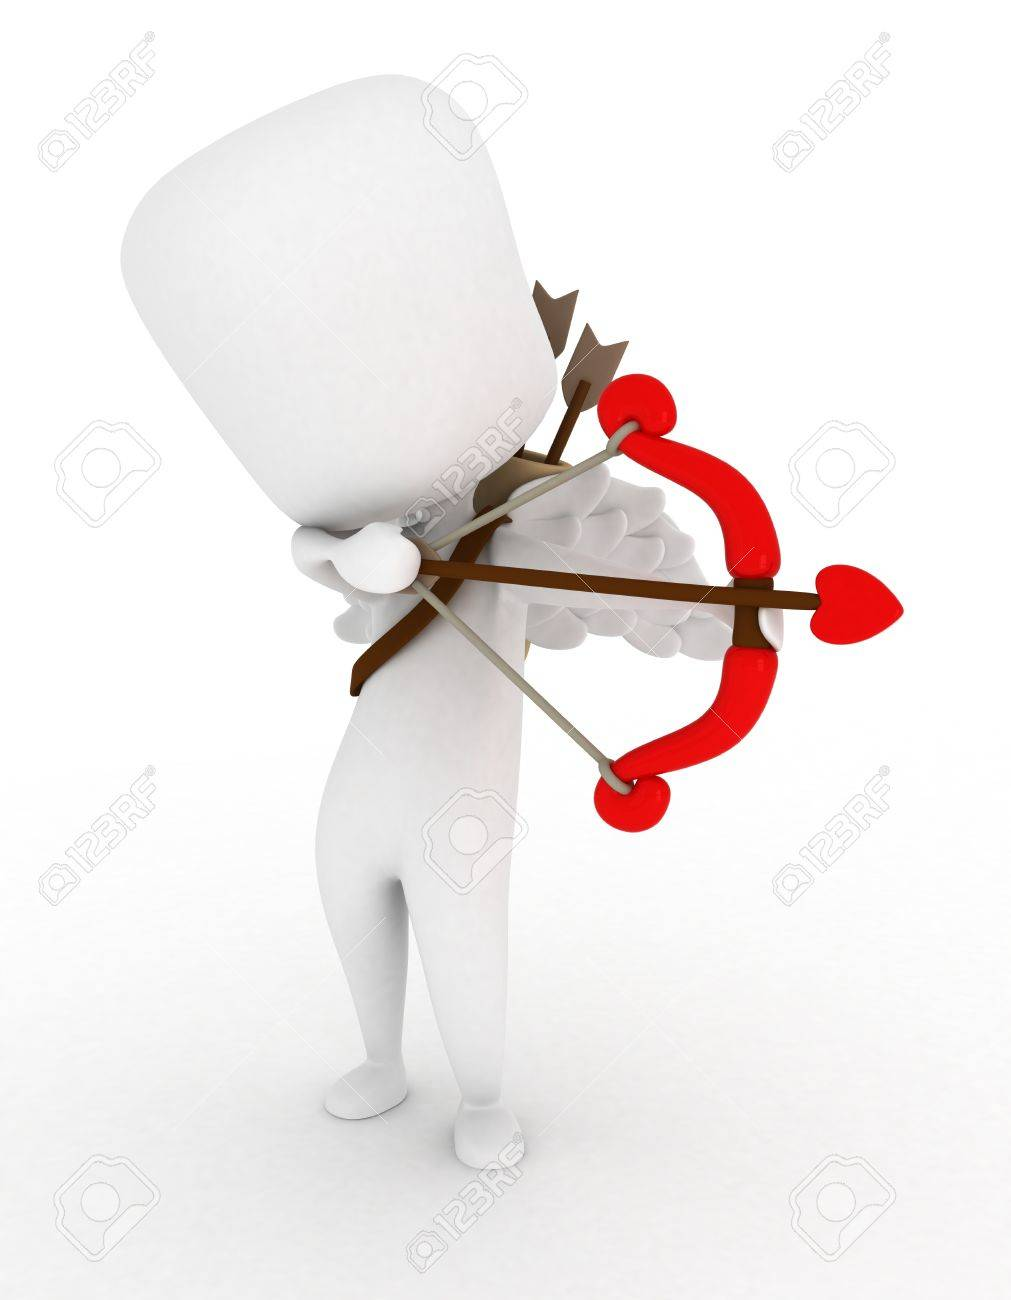 Illustration of a Man Dressed as Cupid Preparing to Release an Arrow Stock Illustration - 8756673